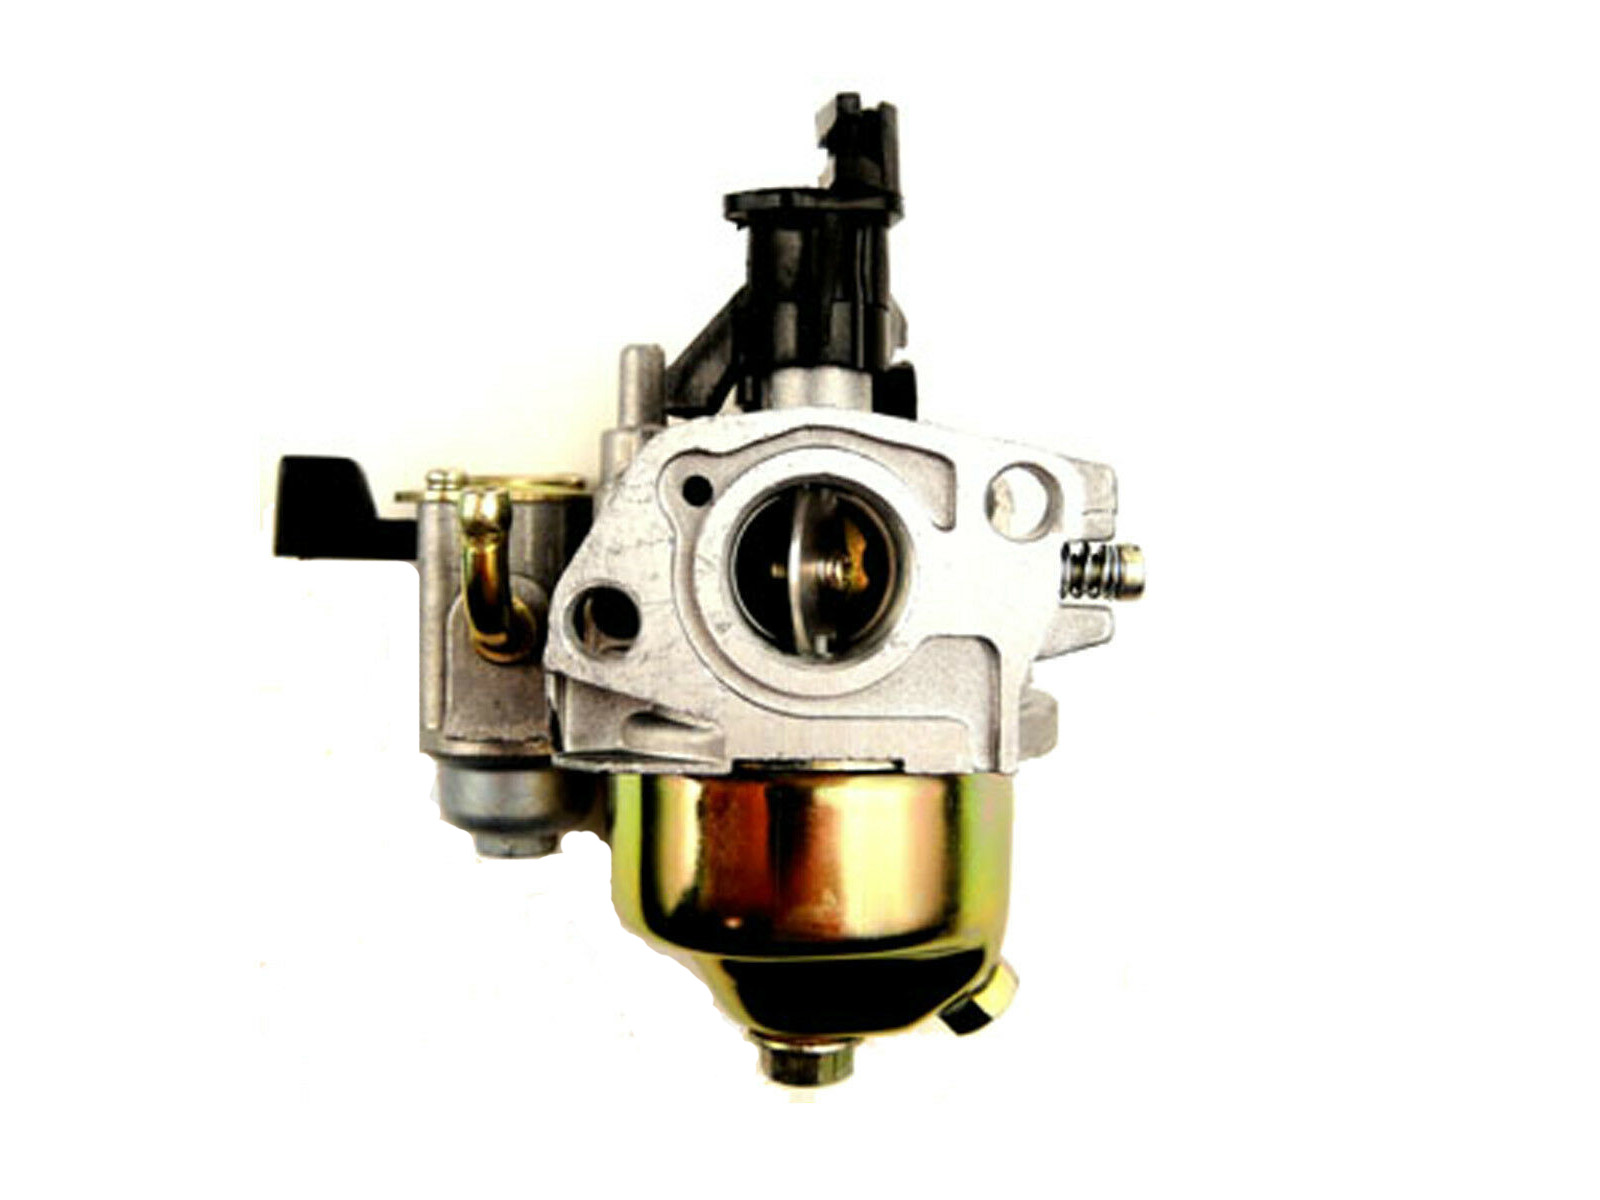 CARBURETOR REPLACEMENT FOR HONDA 16100-ZL0-W51 FITS HONDA GX200